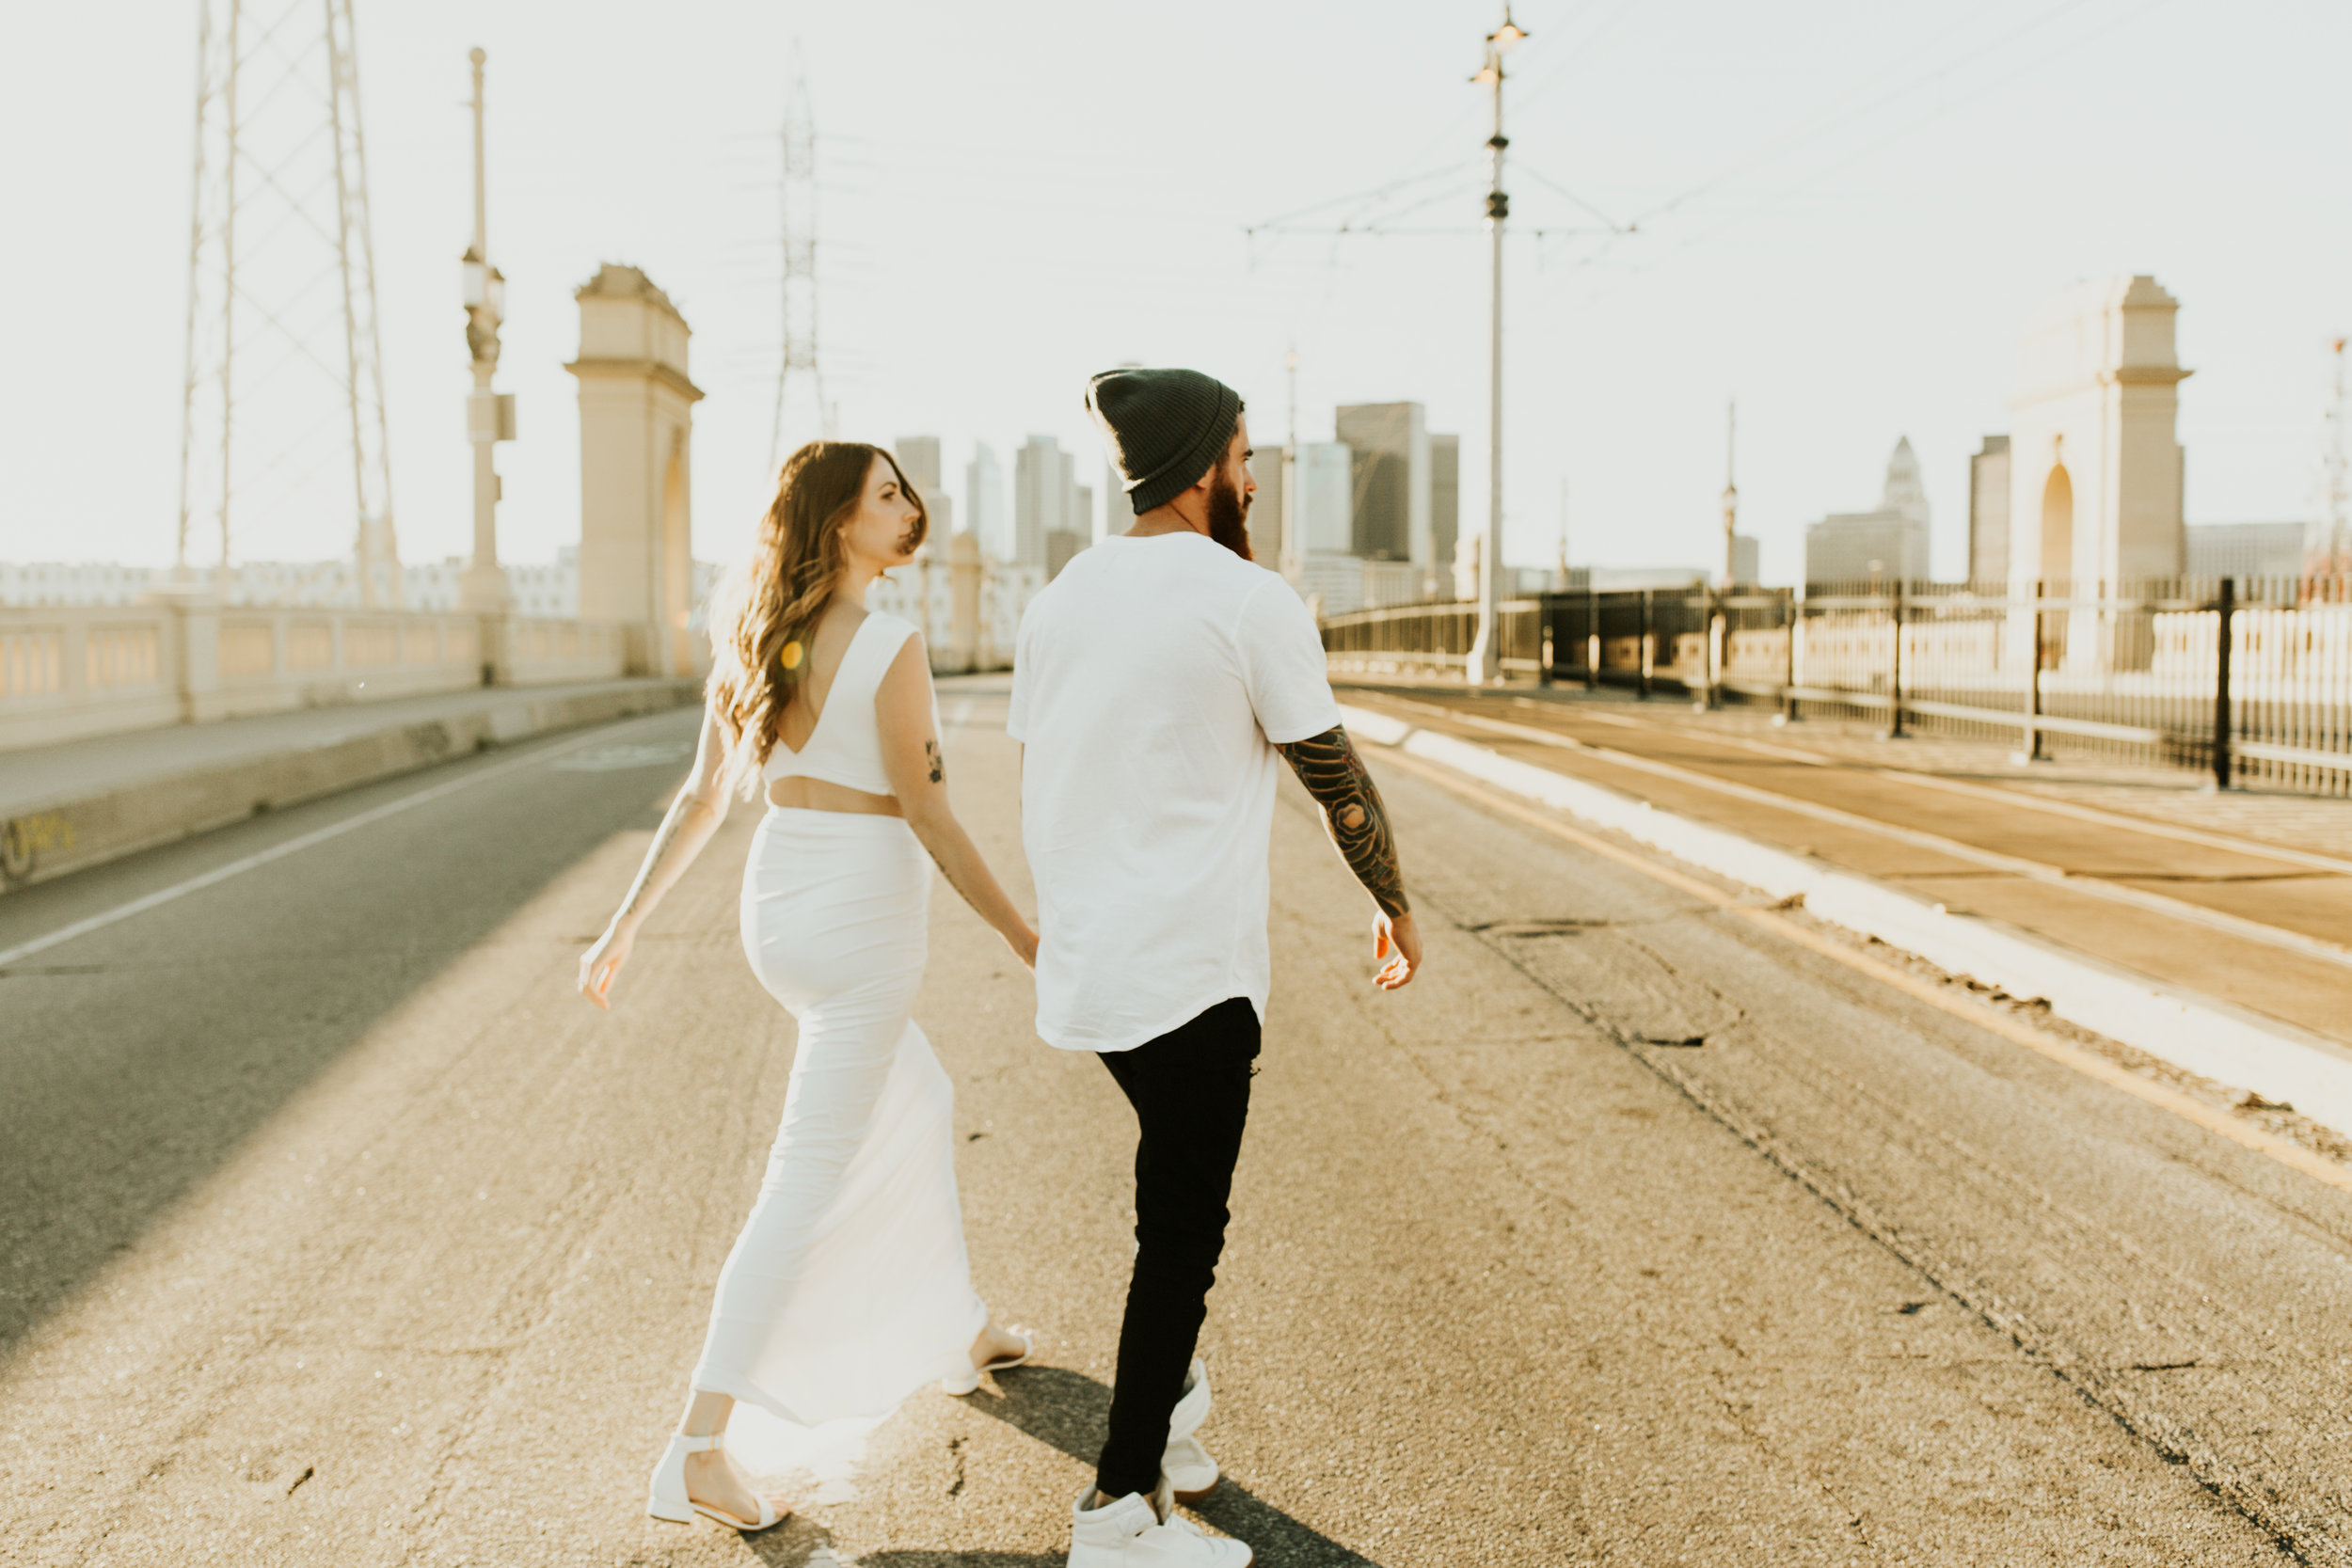 Downtown Arts District Los Angeles Engagement Session Megan & Ronnie | Emily Magers Photography-4.jpg